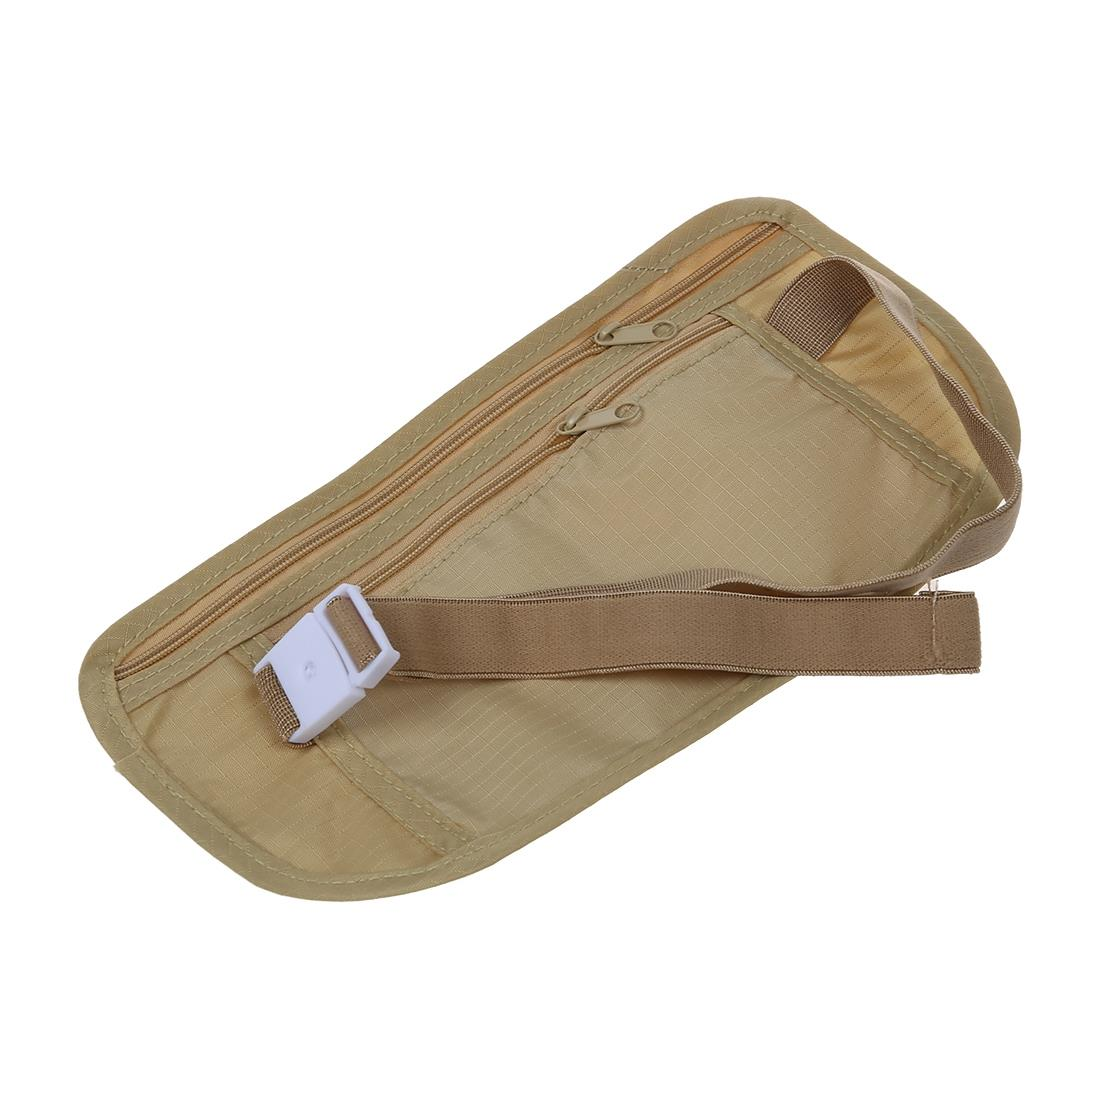 Travel Money Belt for Security Pouch Passport Cash Money Holiday Traveling